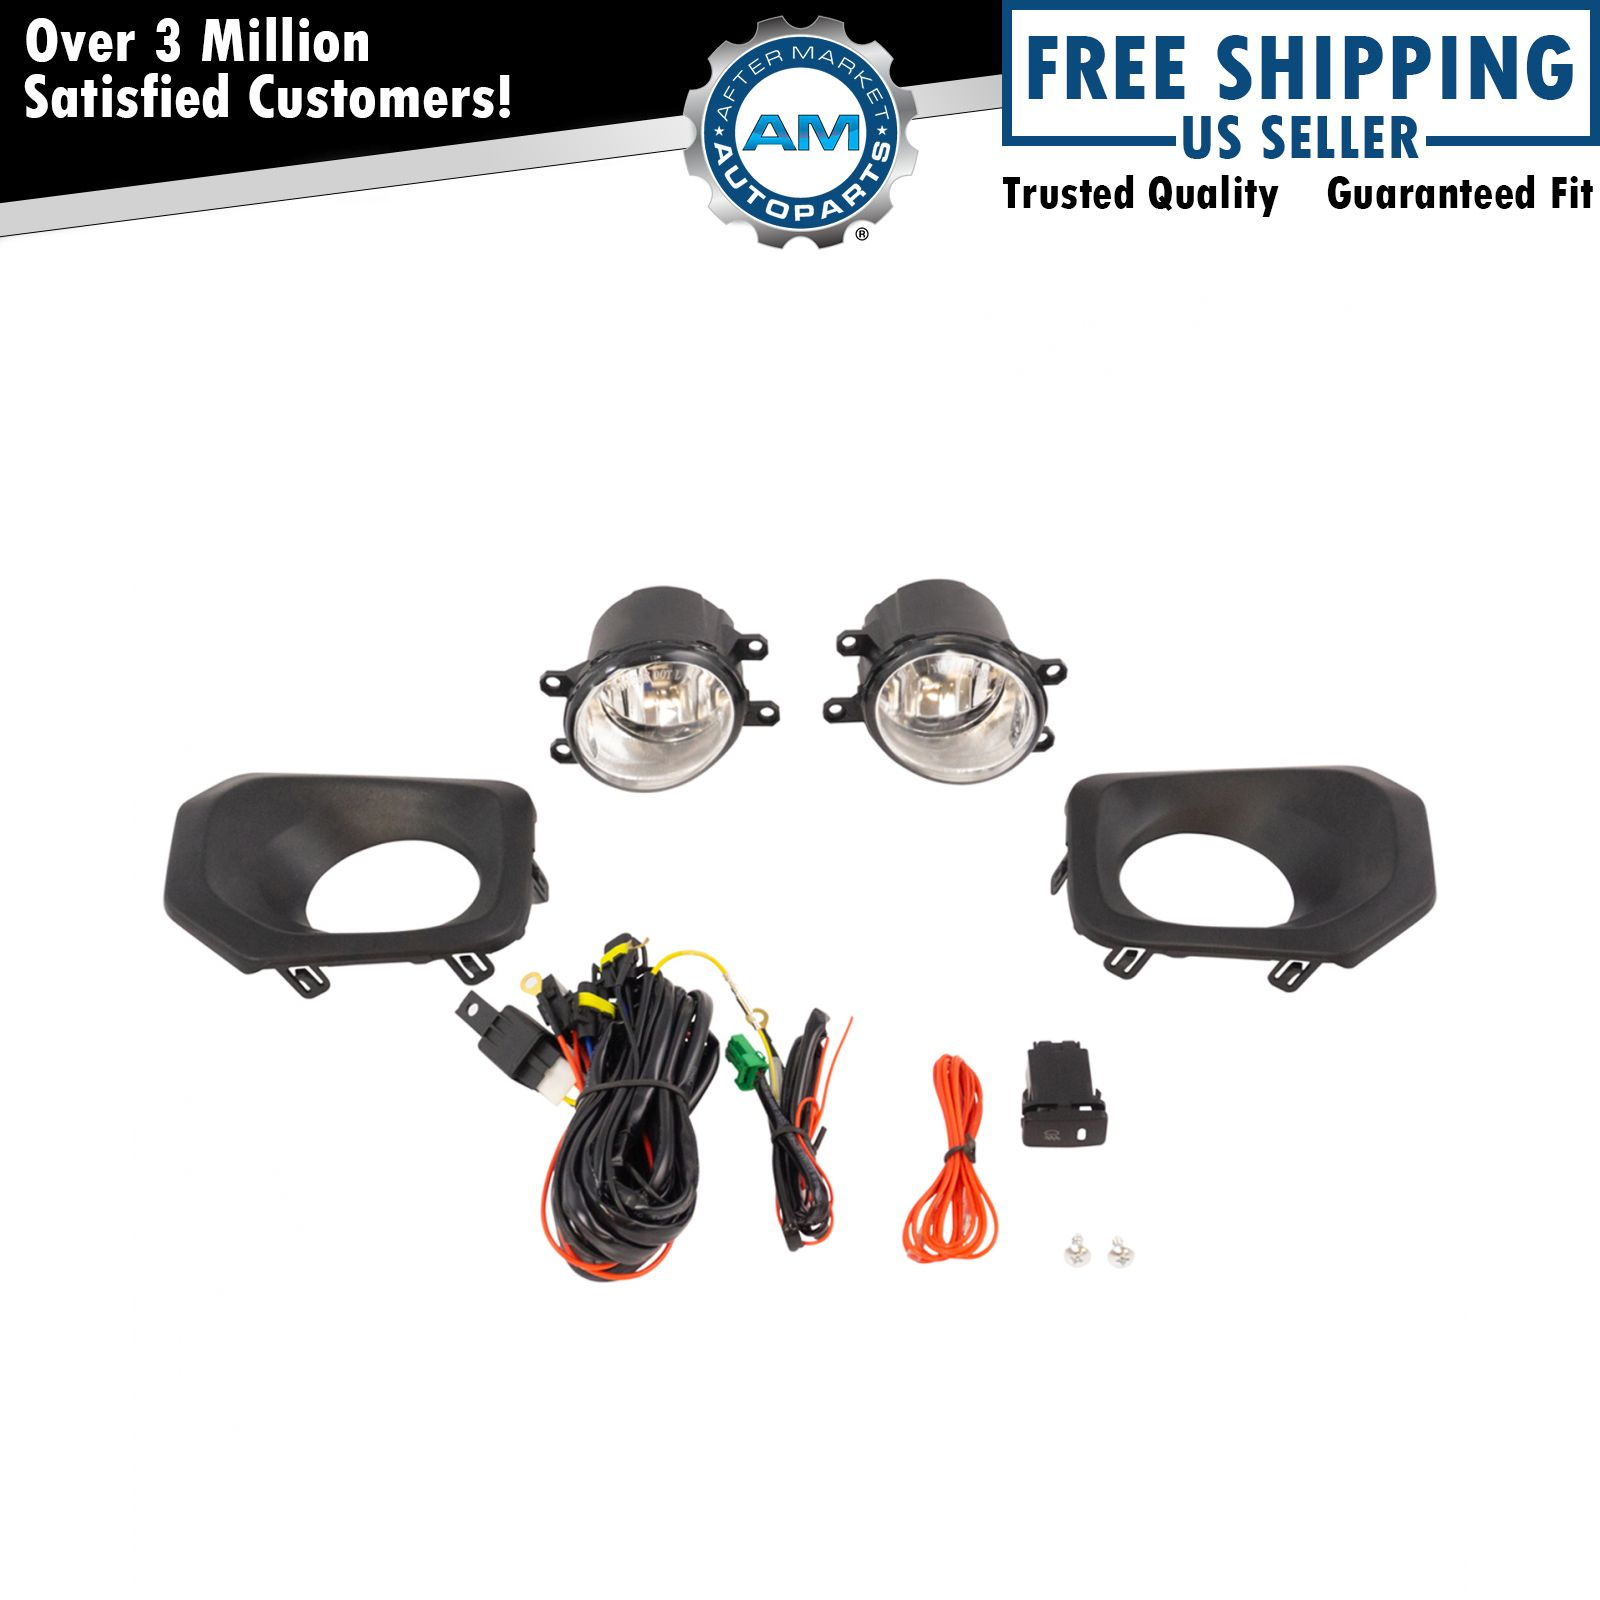 Add On Upgrade Clear Lens Fog Light Bulb Switch Wiring Kit Set for Camry Corolla